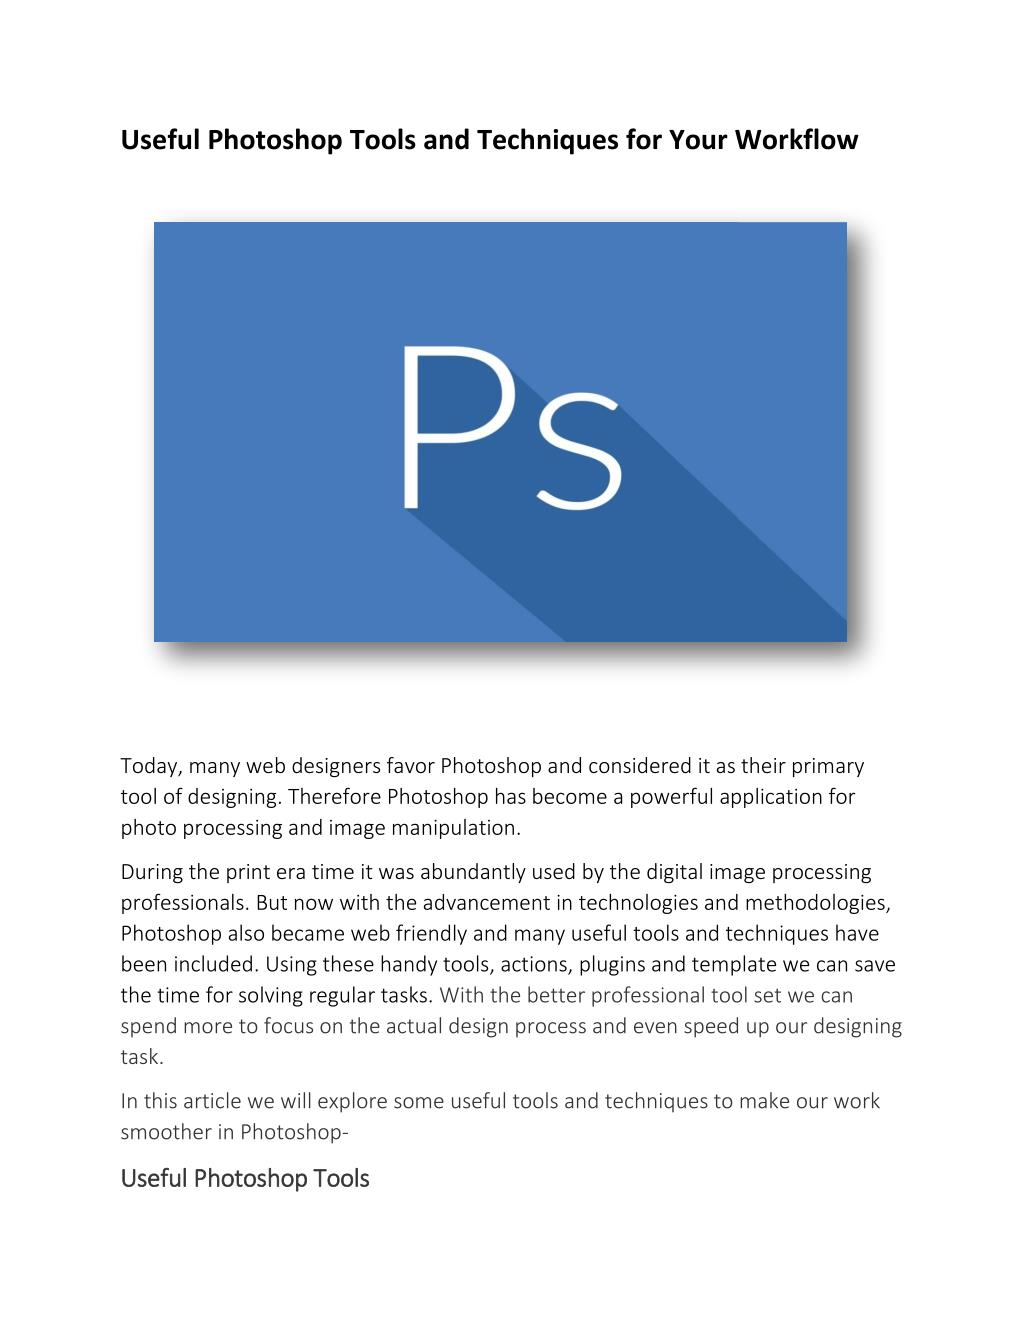 Ppt Useful Photoshop Tools And Techniques For Your Workflow Powerpoint Presentation Id 7304288